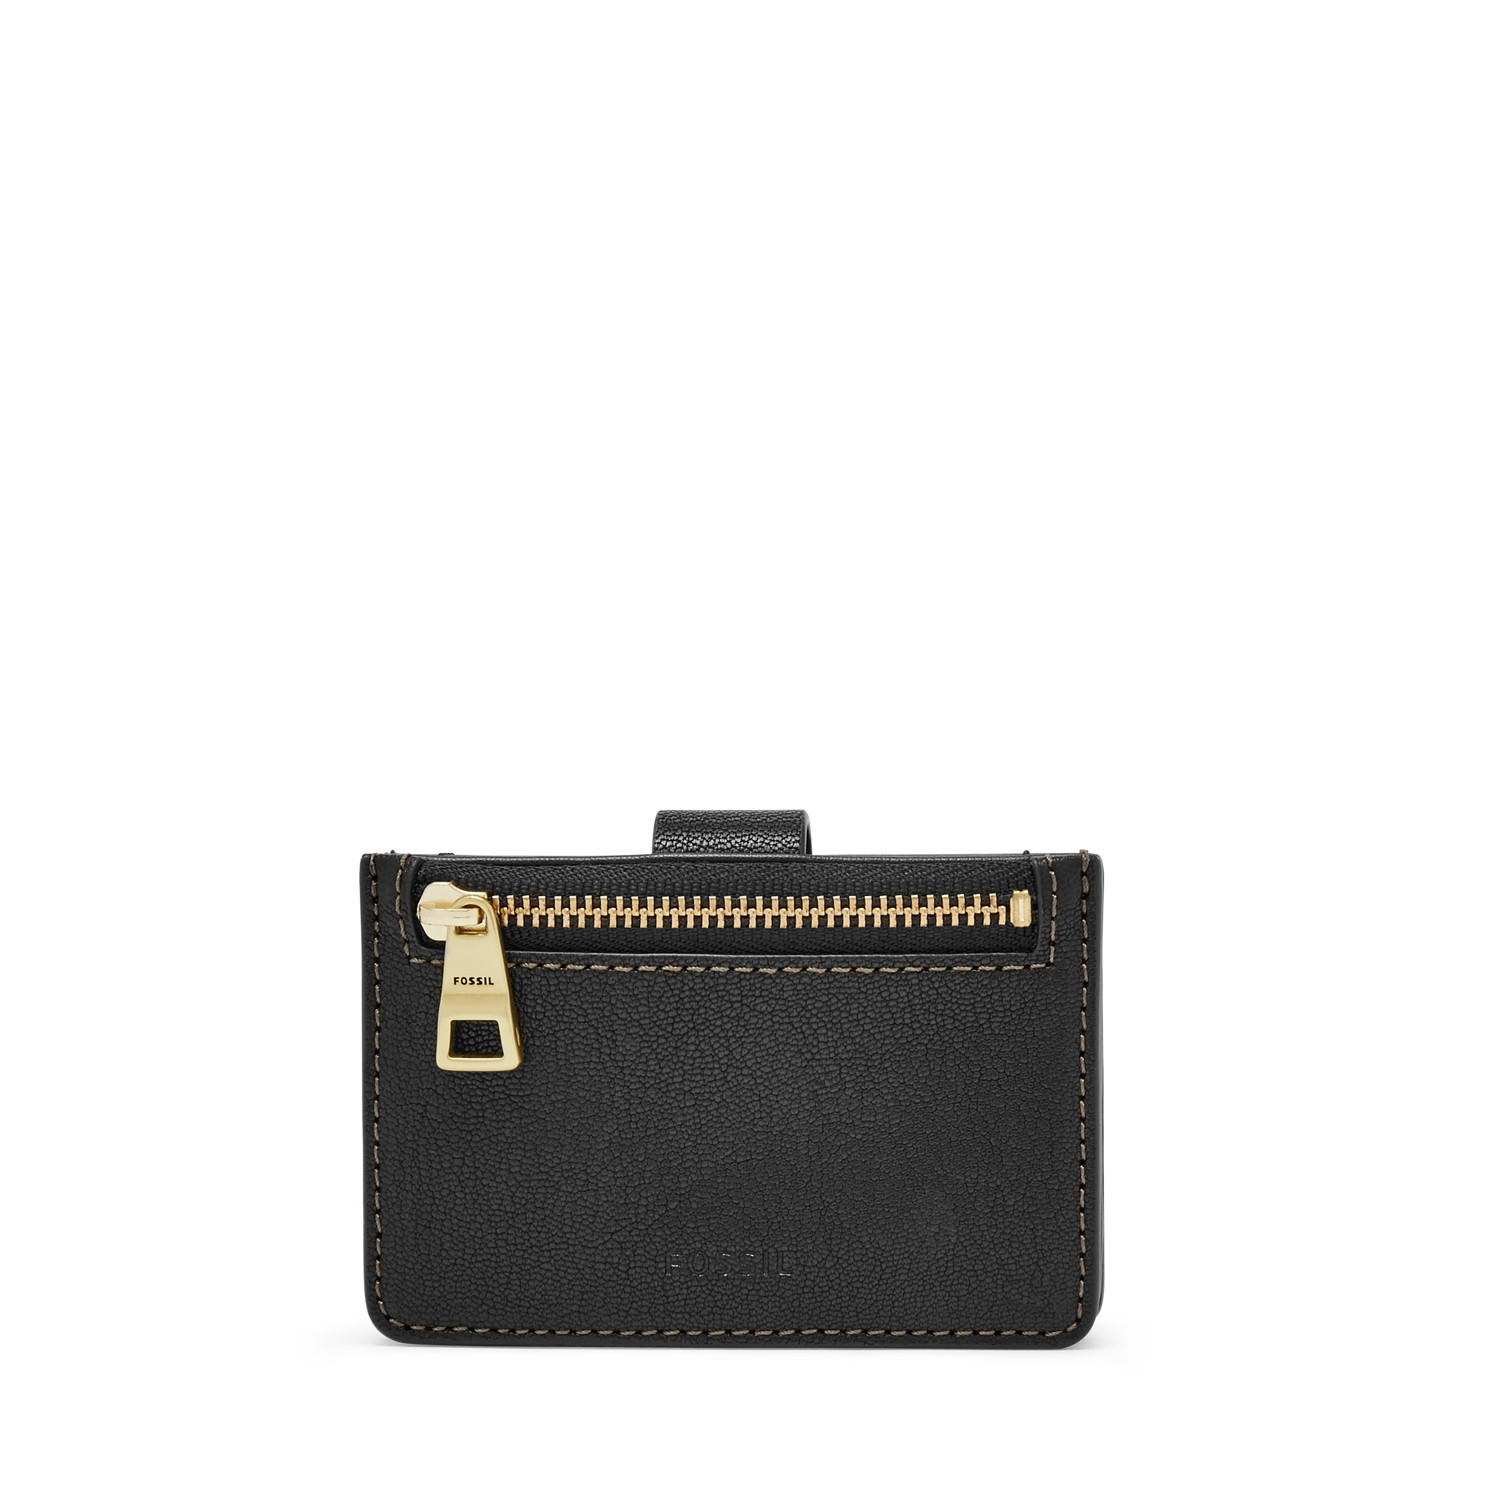 2aed29e5c3a Mini Tab Wallet - Fossil